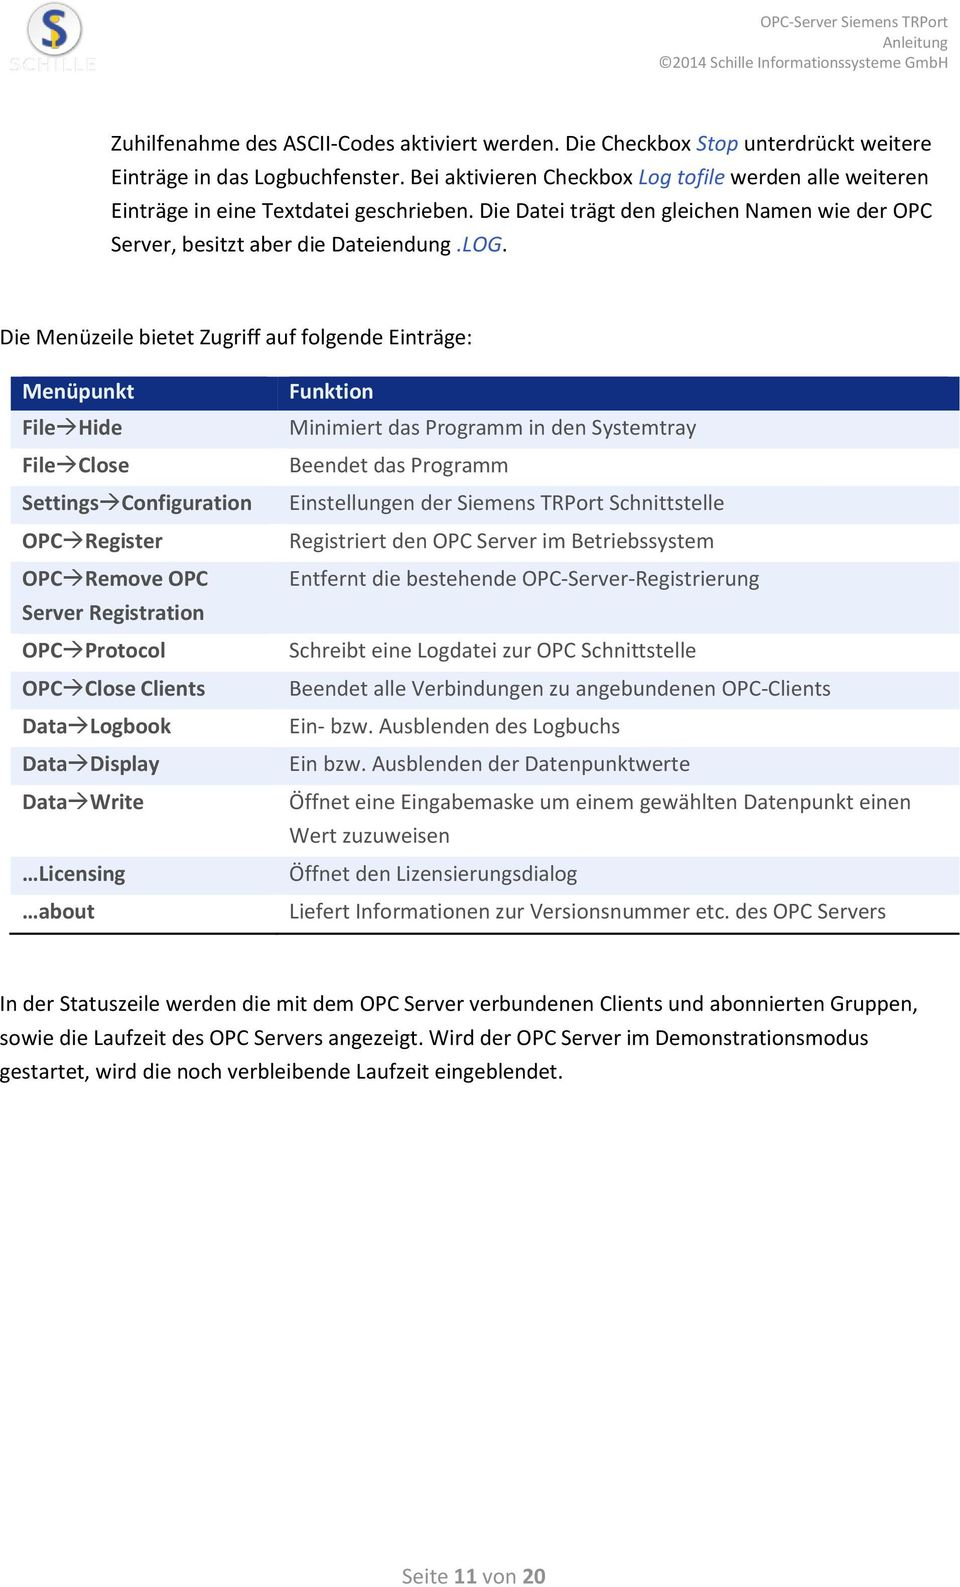 Die Menüzeile bietet Zugriff auf folgende Einträge: Menüpunkt File Hide File Close Settings Configuration OPC Register OPC Remove OPC Server Registration OPC Protocol OPC Close Clients Data Logbook